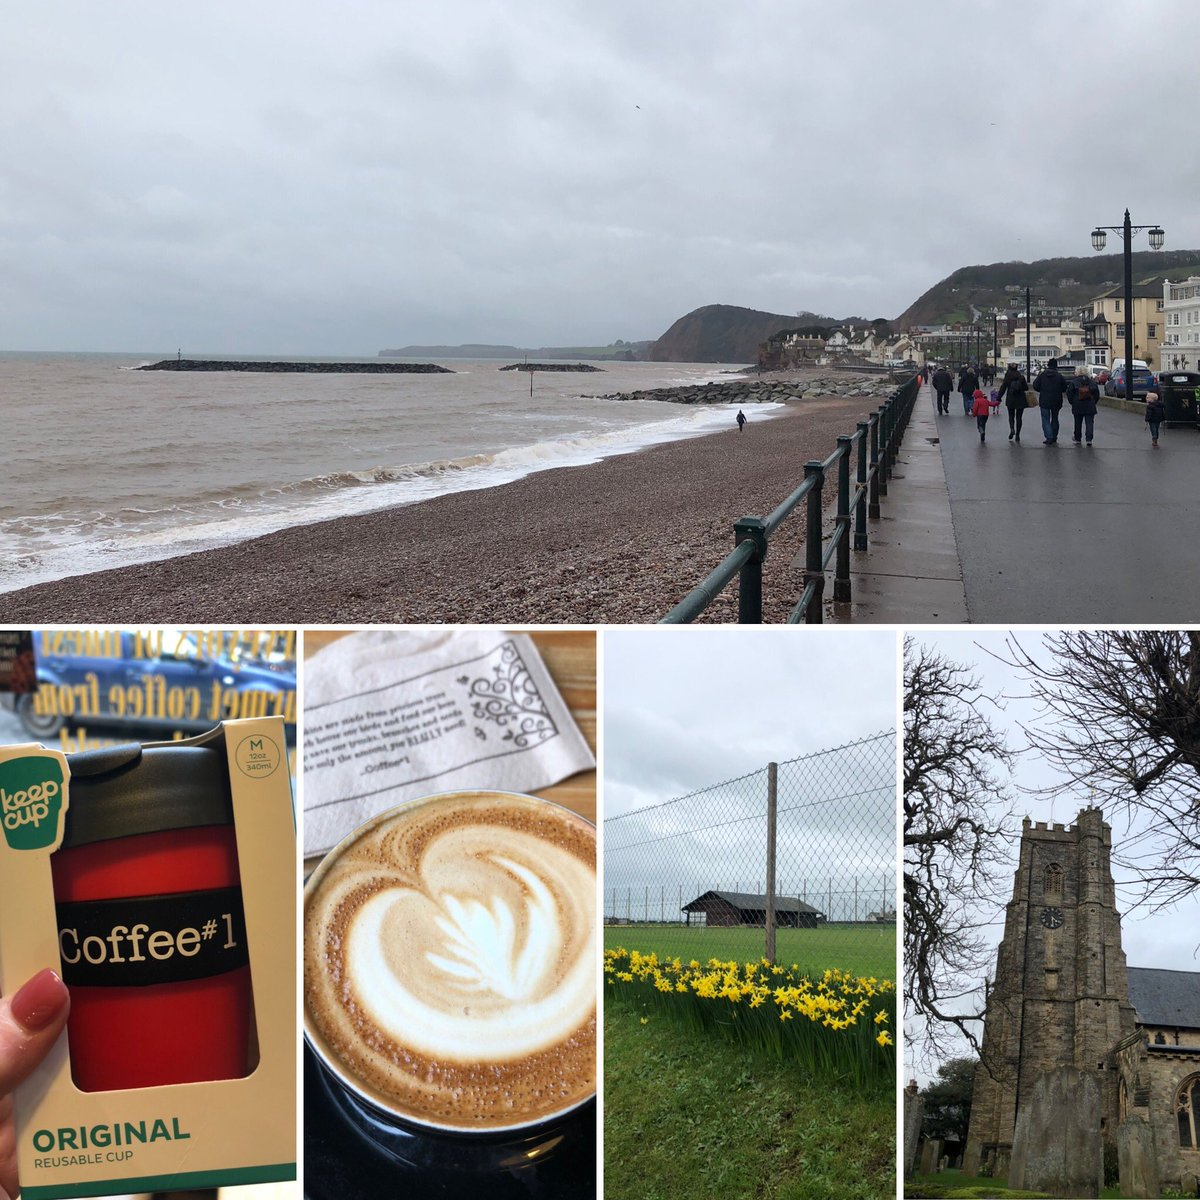 Sidmouth highlights from yesterday  #devon #seaside #quickpop One of #myhappyplaces   #coffee #coffeelover #coffeeshopvibes #flatwhite #beach #sea #freshair #norain https://t.co/I0n0L9J3A8